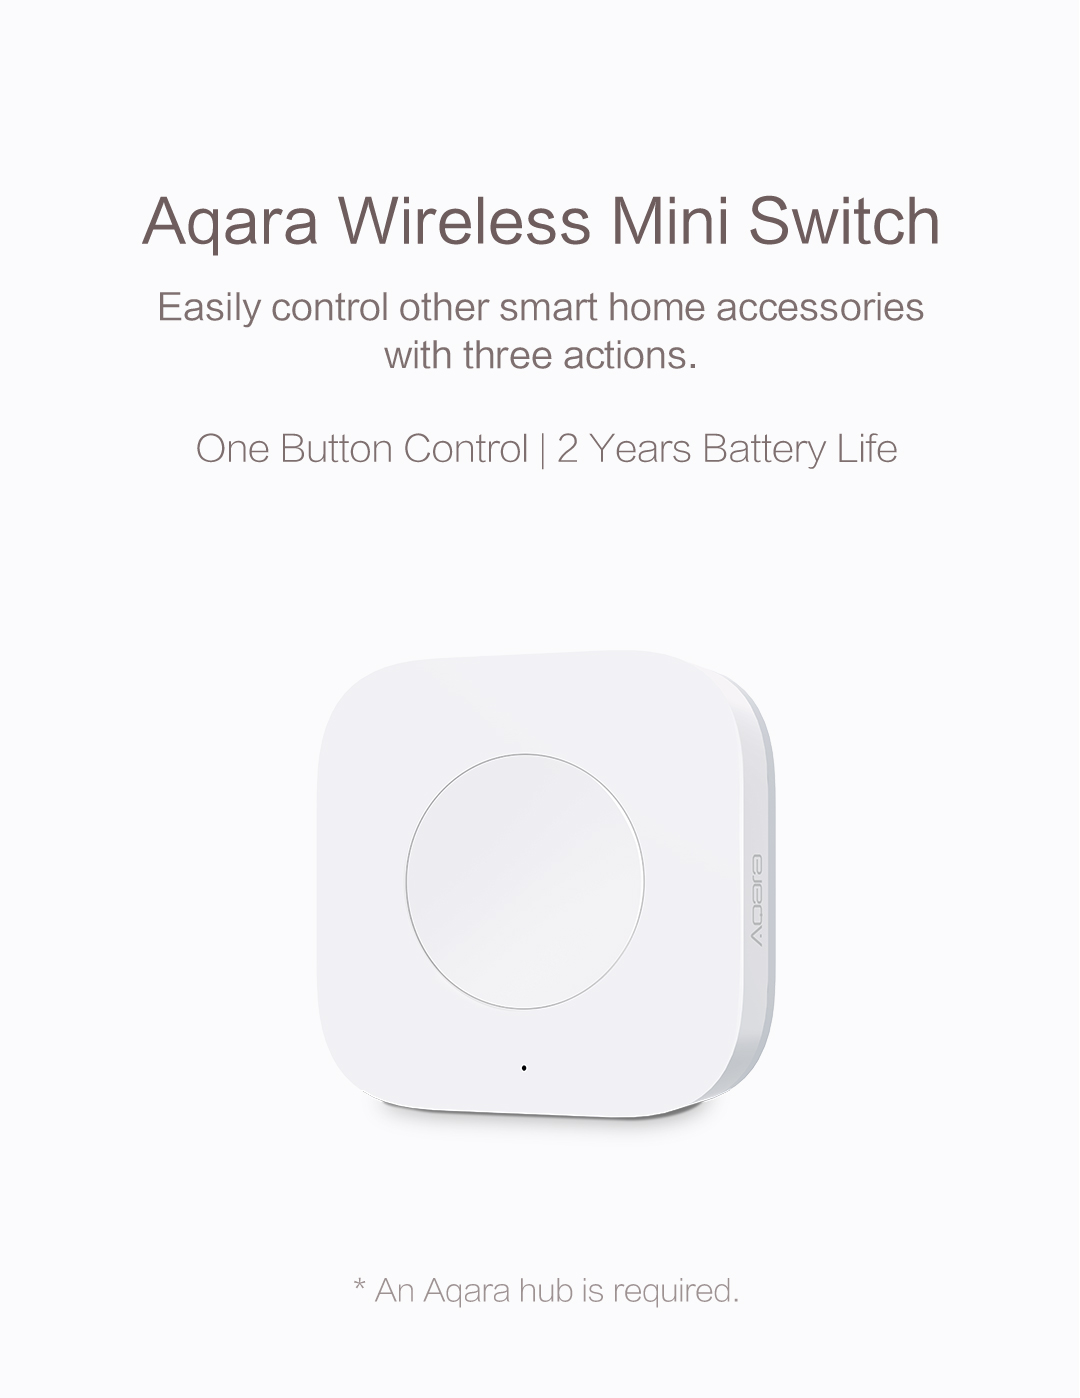 Aqara wireless mini switch - Easily control other smart home accessories with three actions